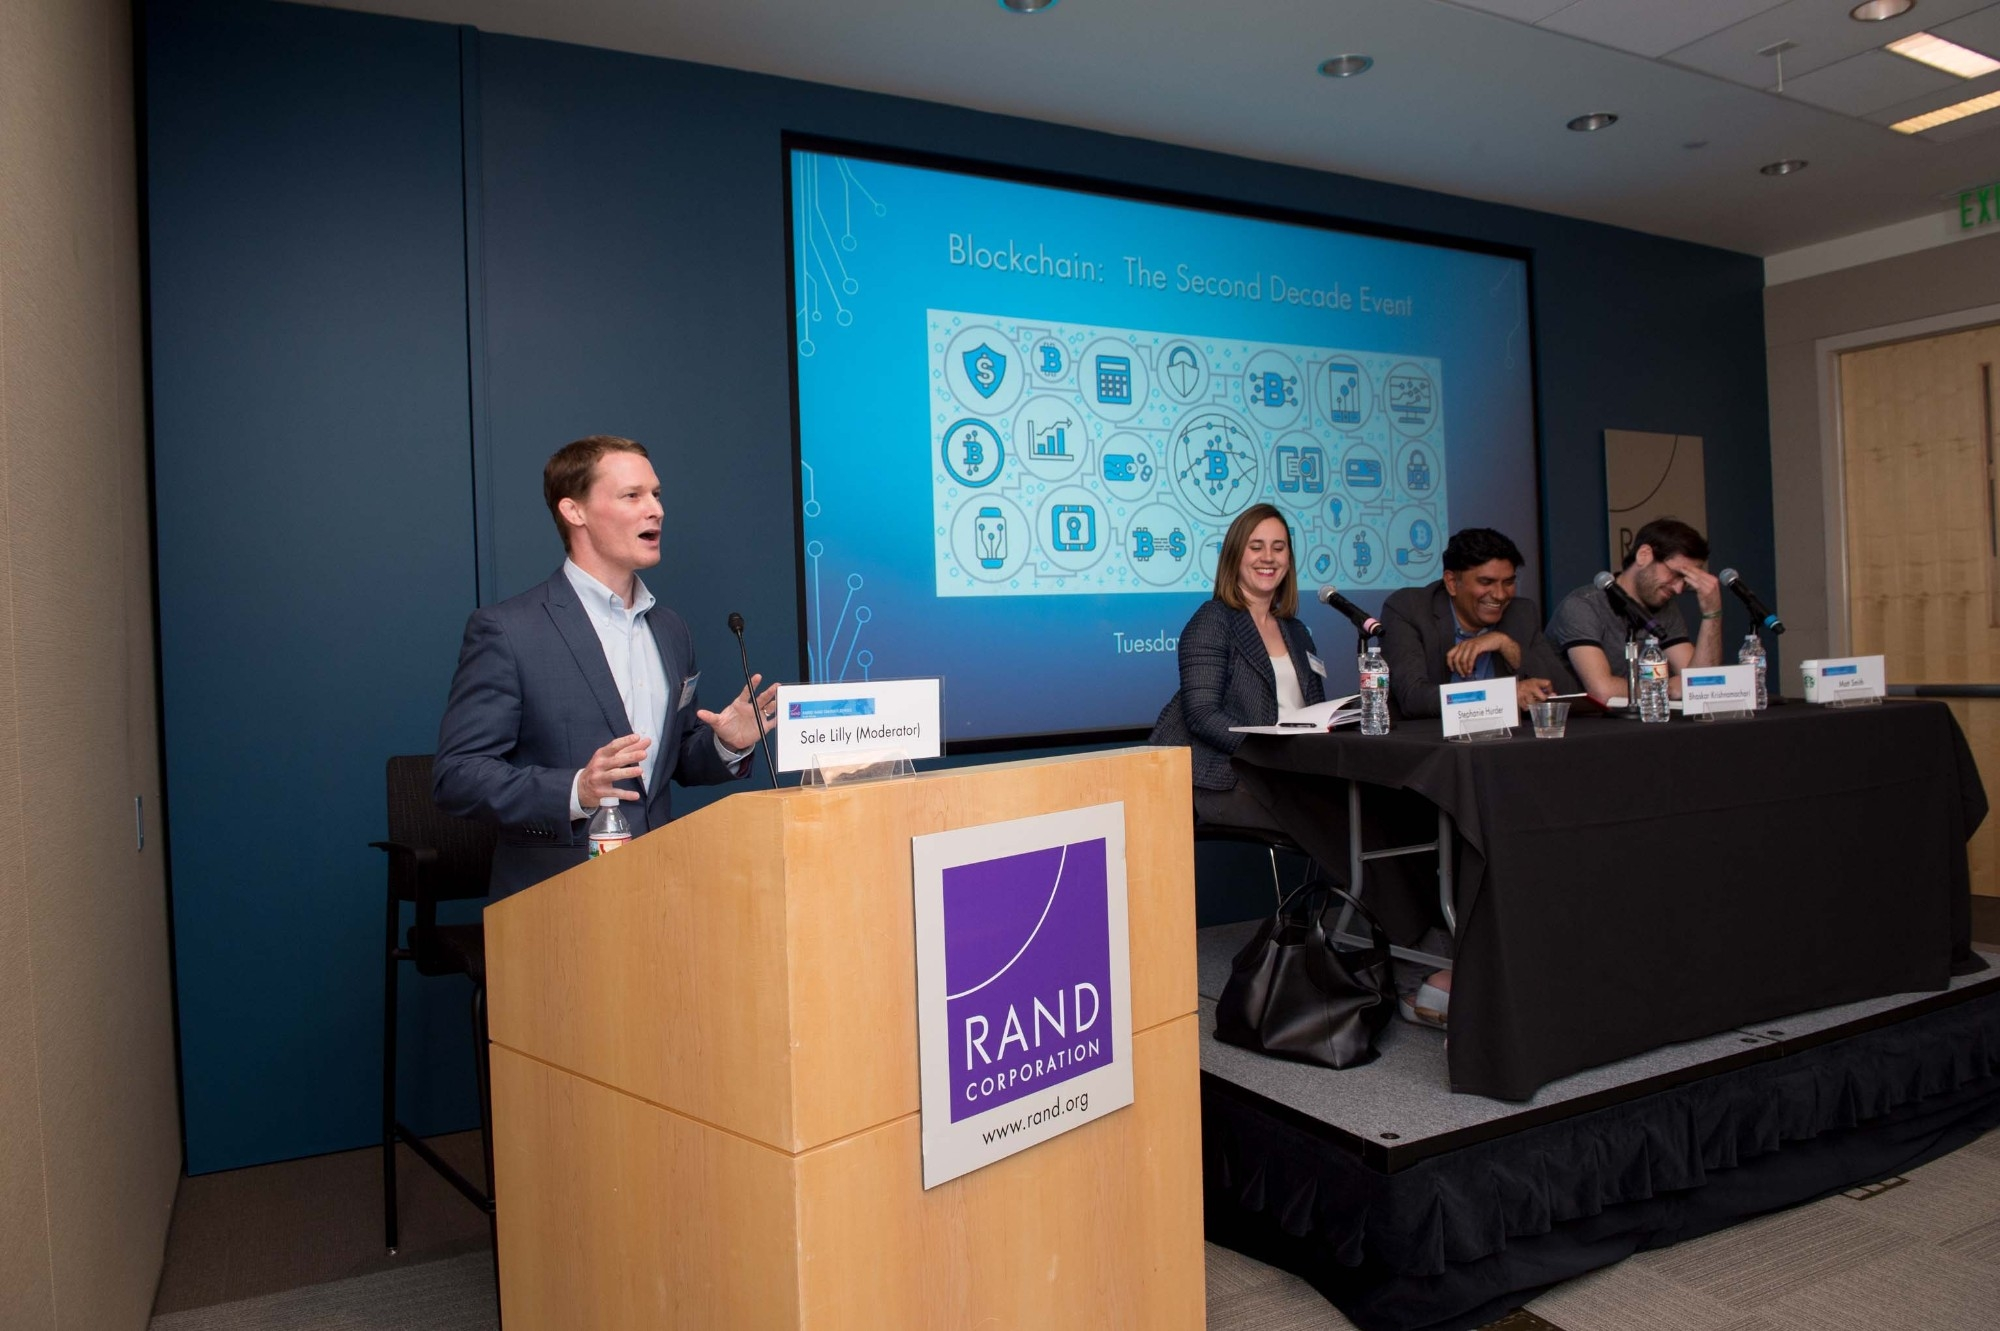 Blockchain talk and chili reception, photo by Diane Baldwin/RAND Corporation, p201904_02, event, panel, dinner, sale lilly, stephanie hurder, bhaskar krishnamachari, Matt Smith